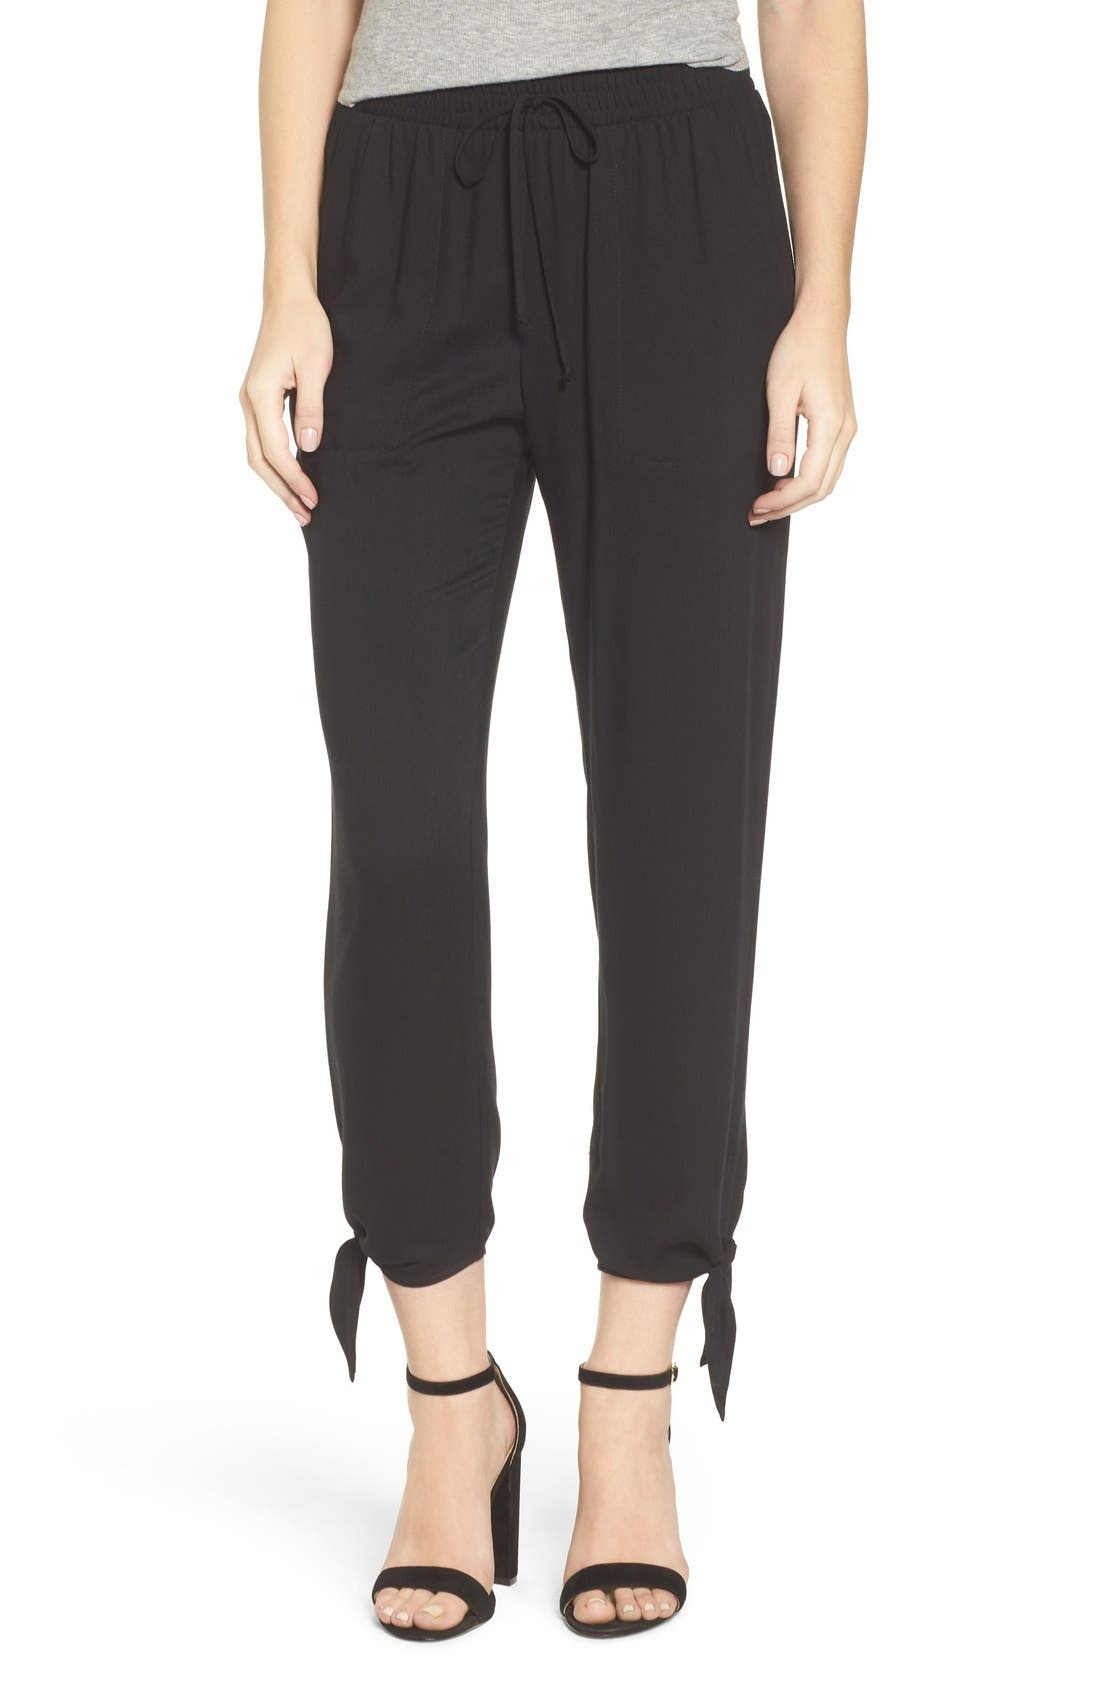 Cropped Pants for Women: Jeans, Print, Capri & More | Nordstrom